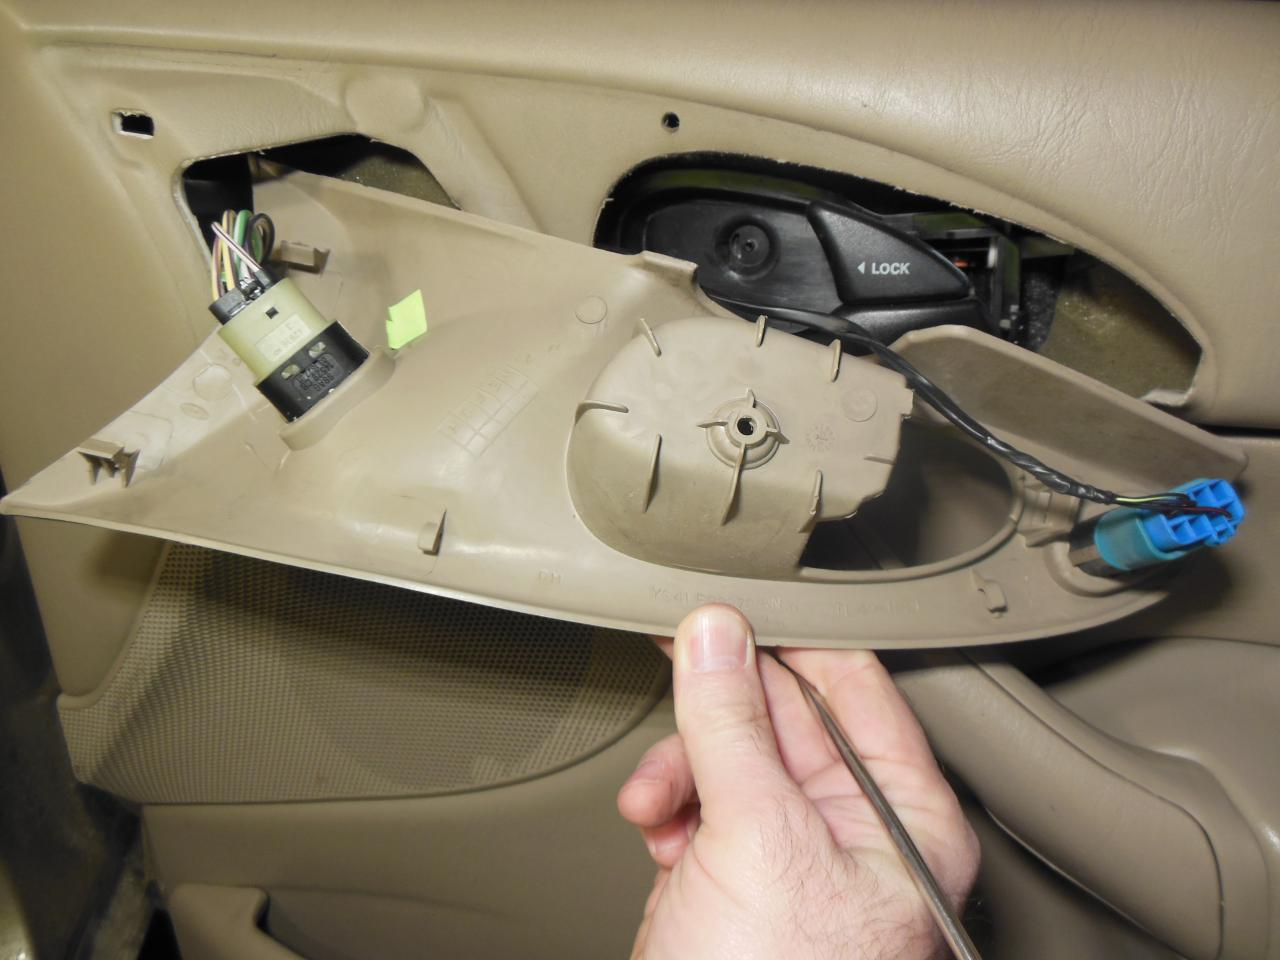 Surprising 2001 Ford Focus Door Handle Photos - Ideas house design ...